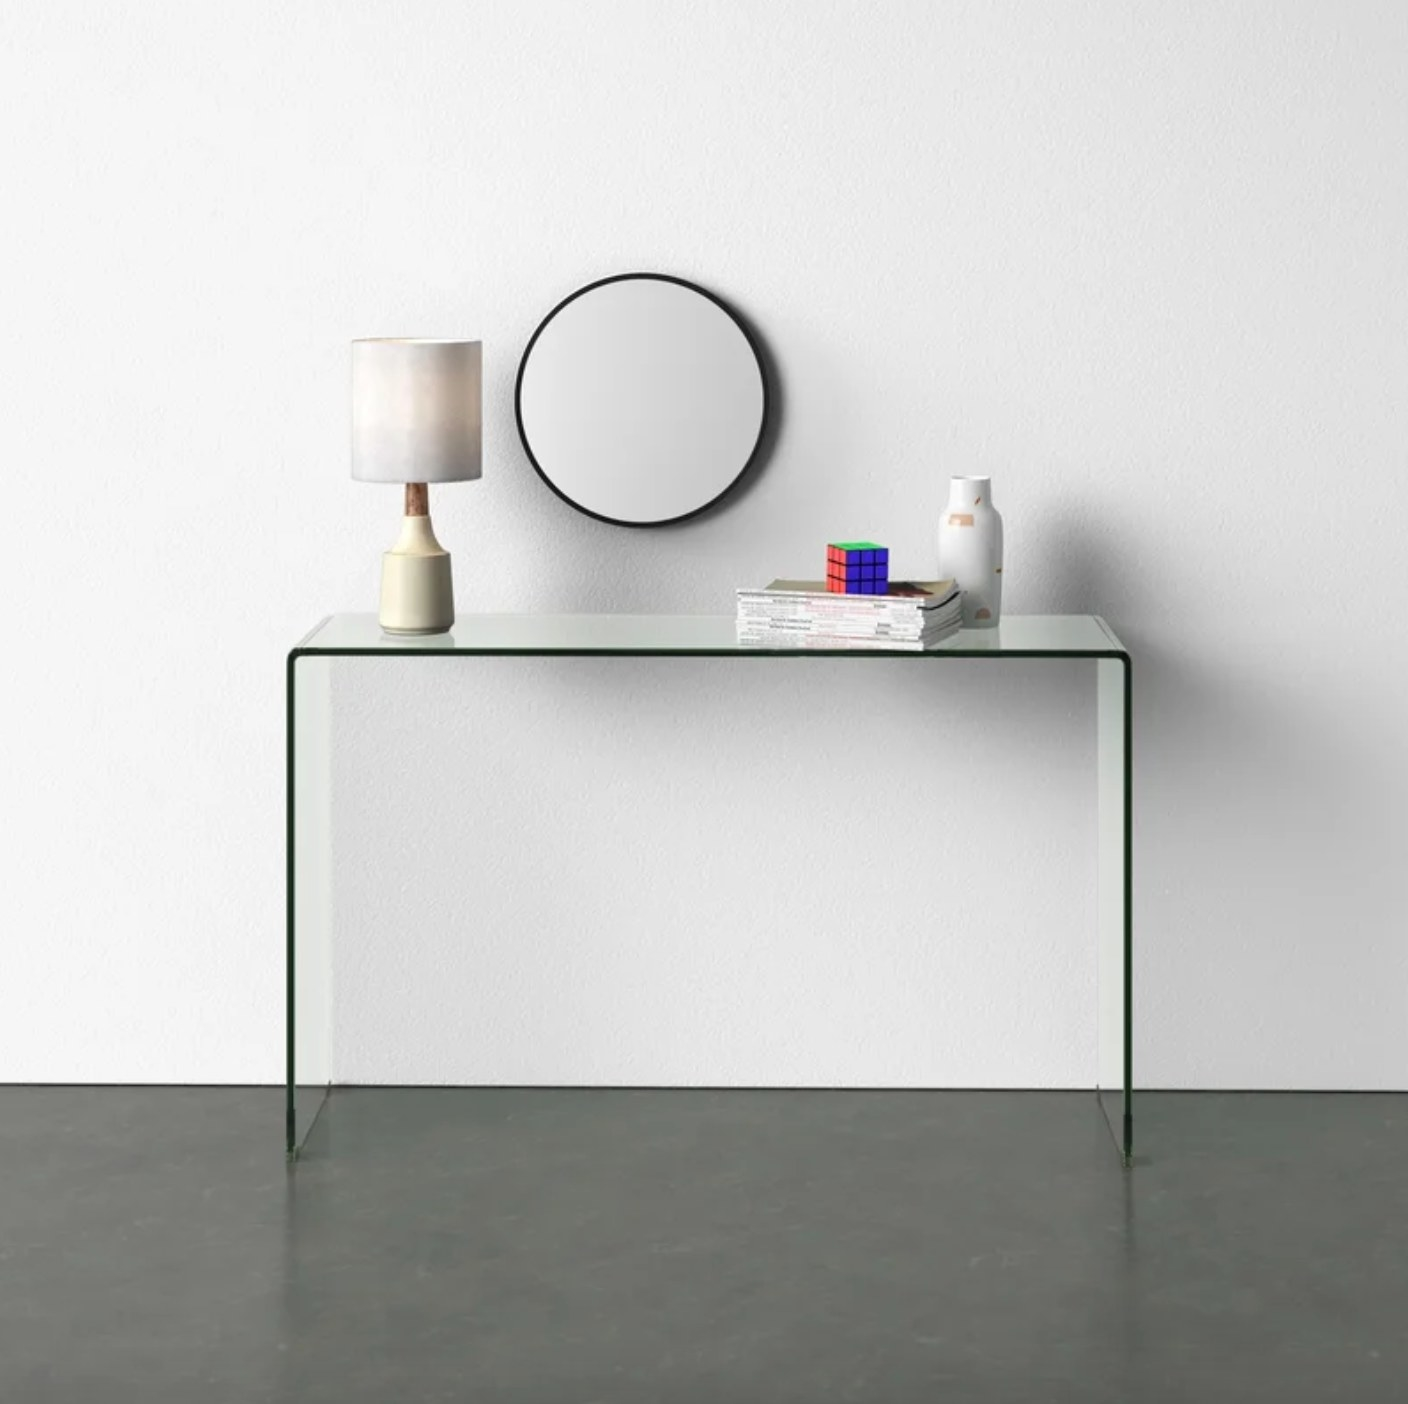 The glass console table